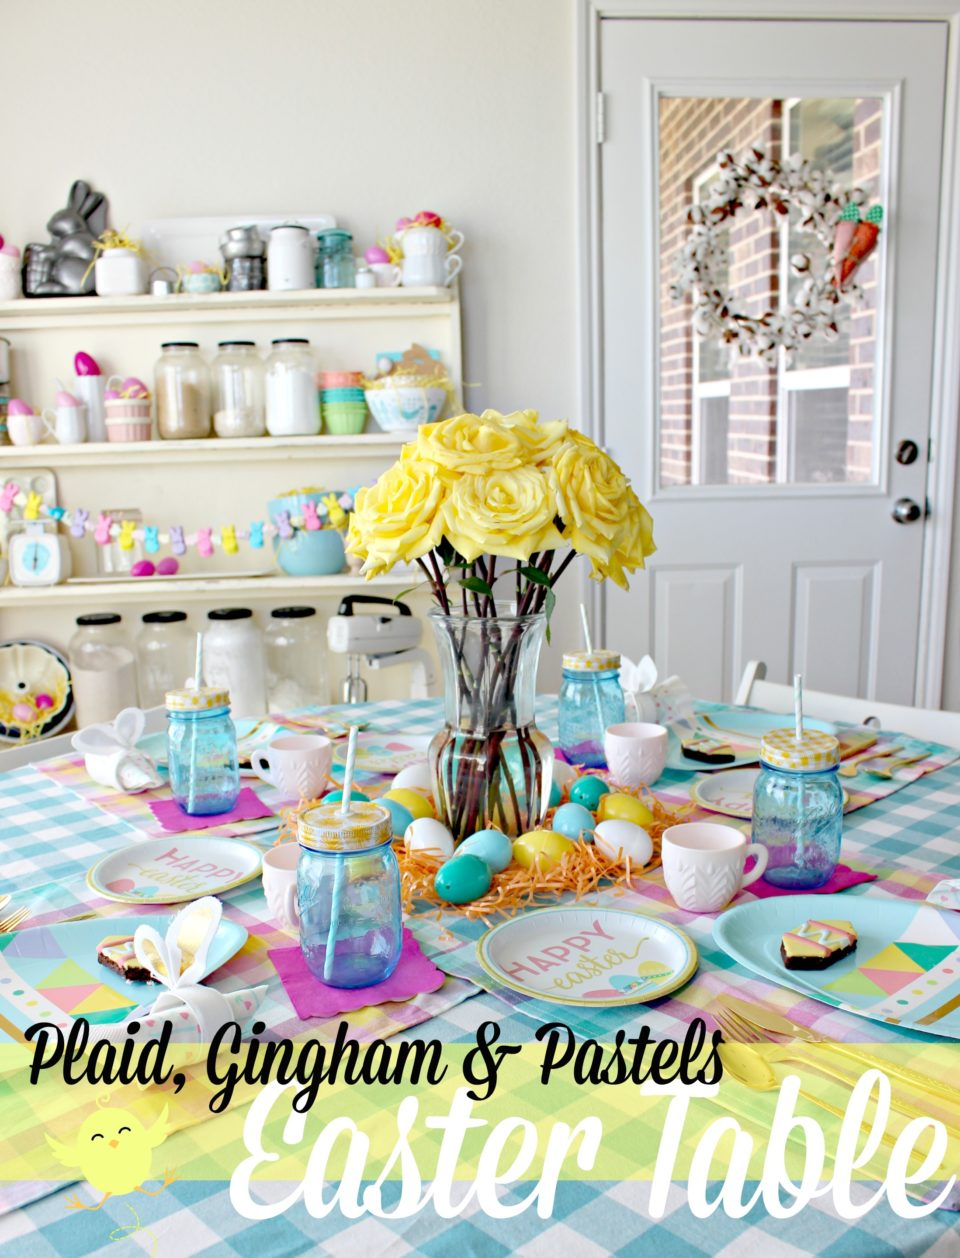 Plaid, Gingham & Pastels- Another Easter Table!